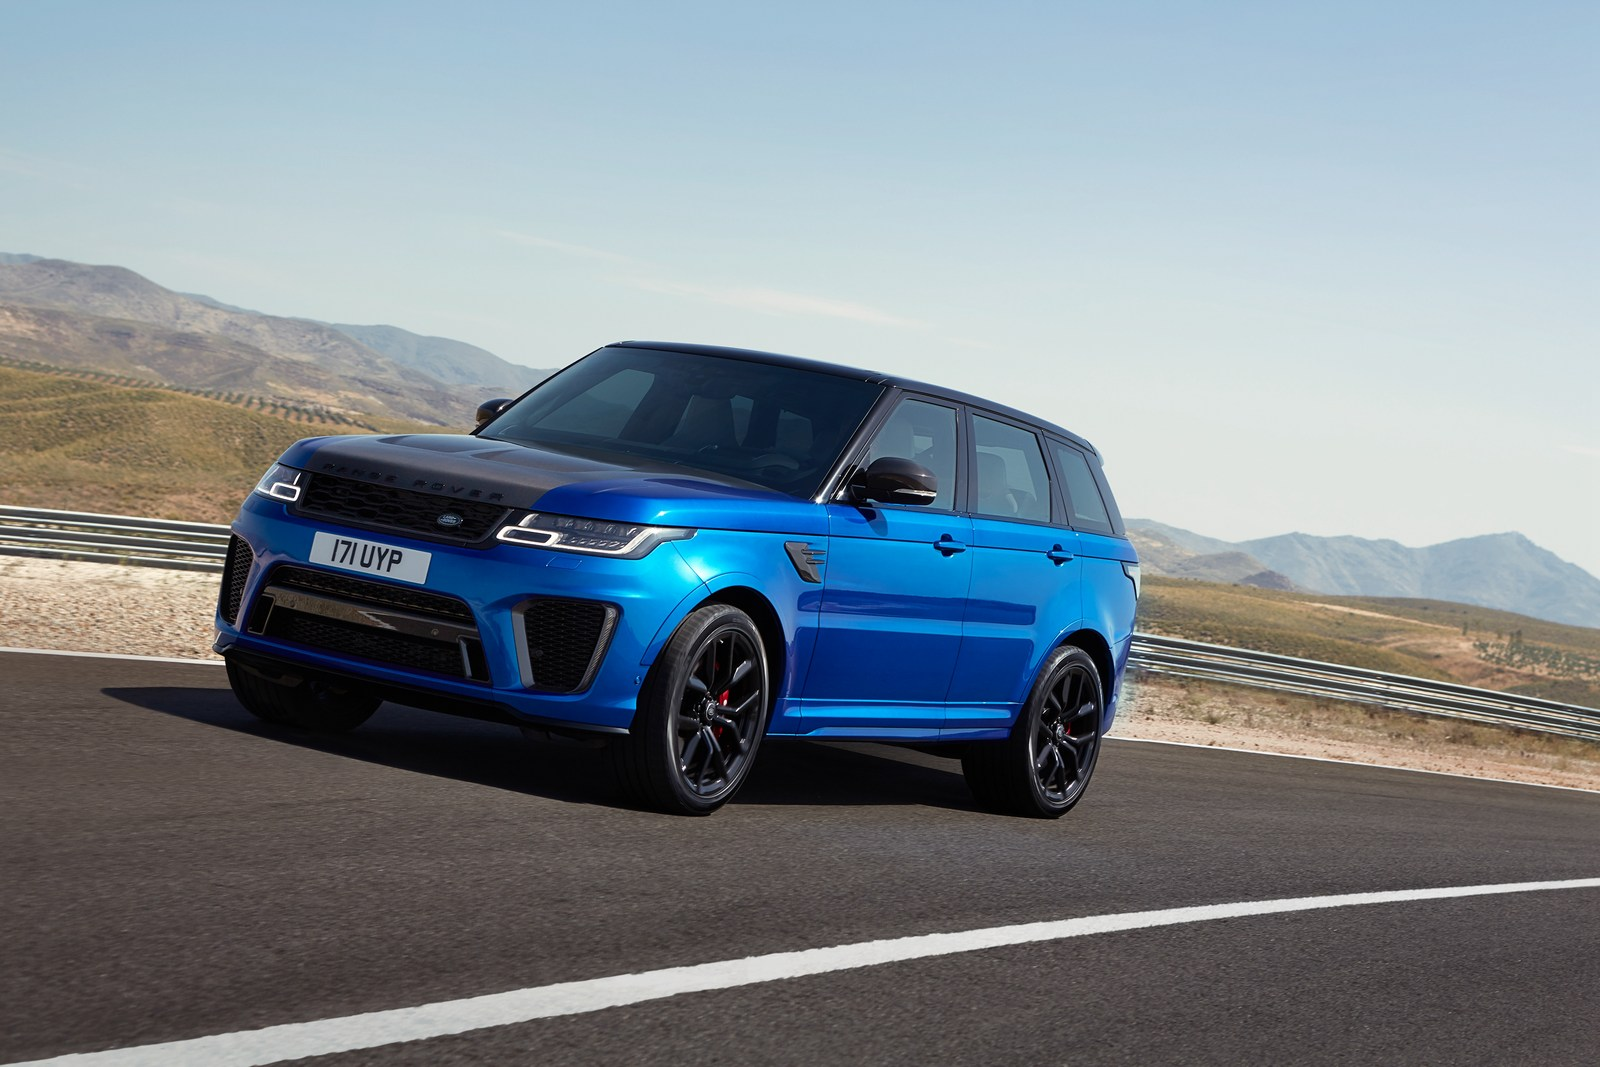 Land Rovers For Sale >> 2018 Range Rover Sport SVR Facelift Looks Ready To Rumble | Carscoops